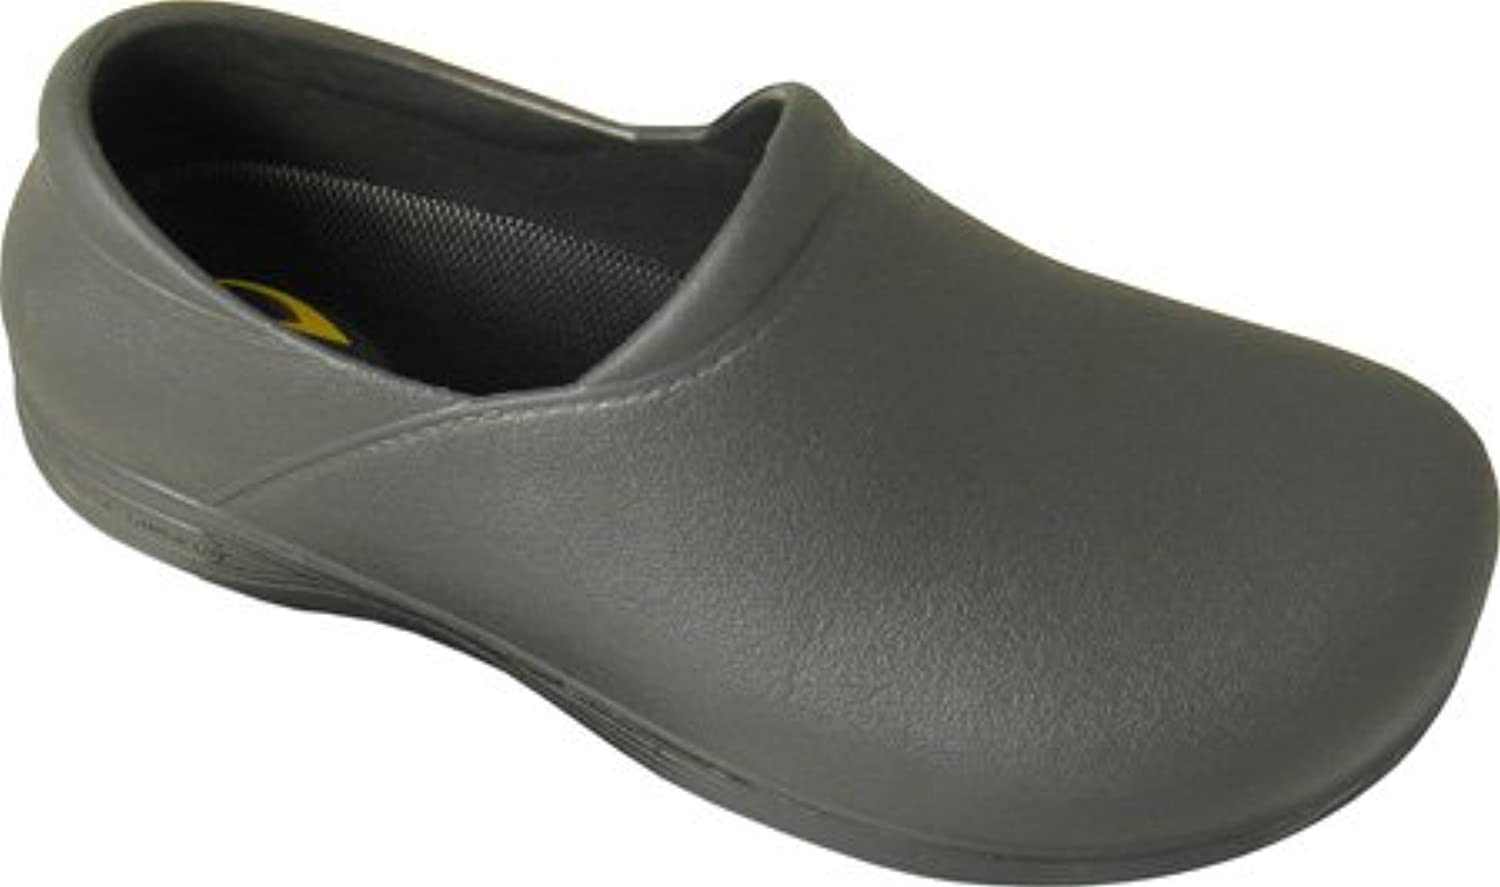 Genuine Grip Footwear Women's Slip-Resistant Injection Clogs,Black EVA,US 12 W